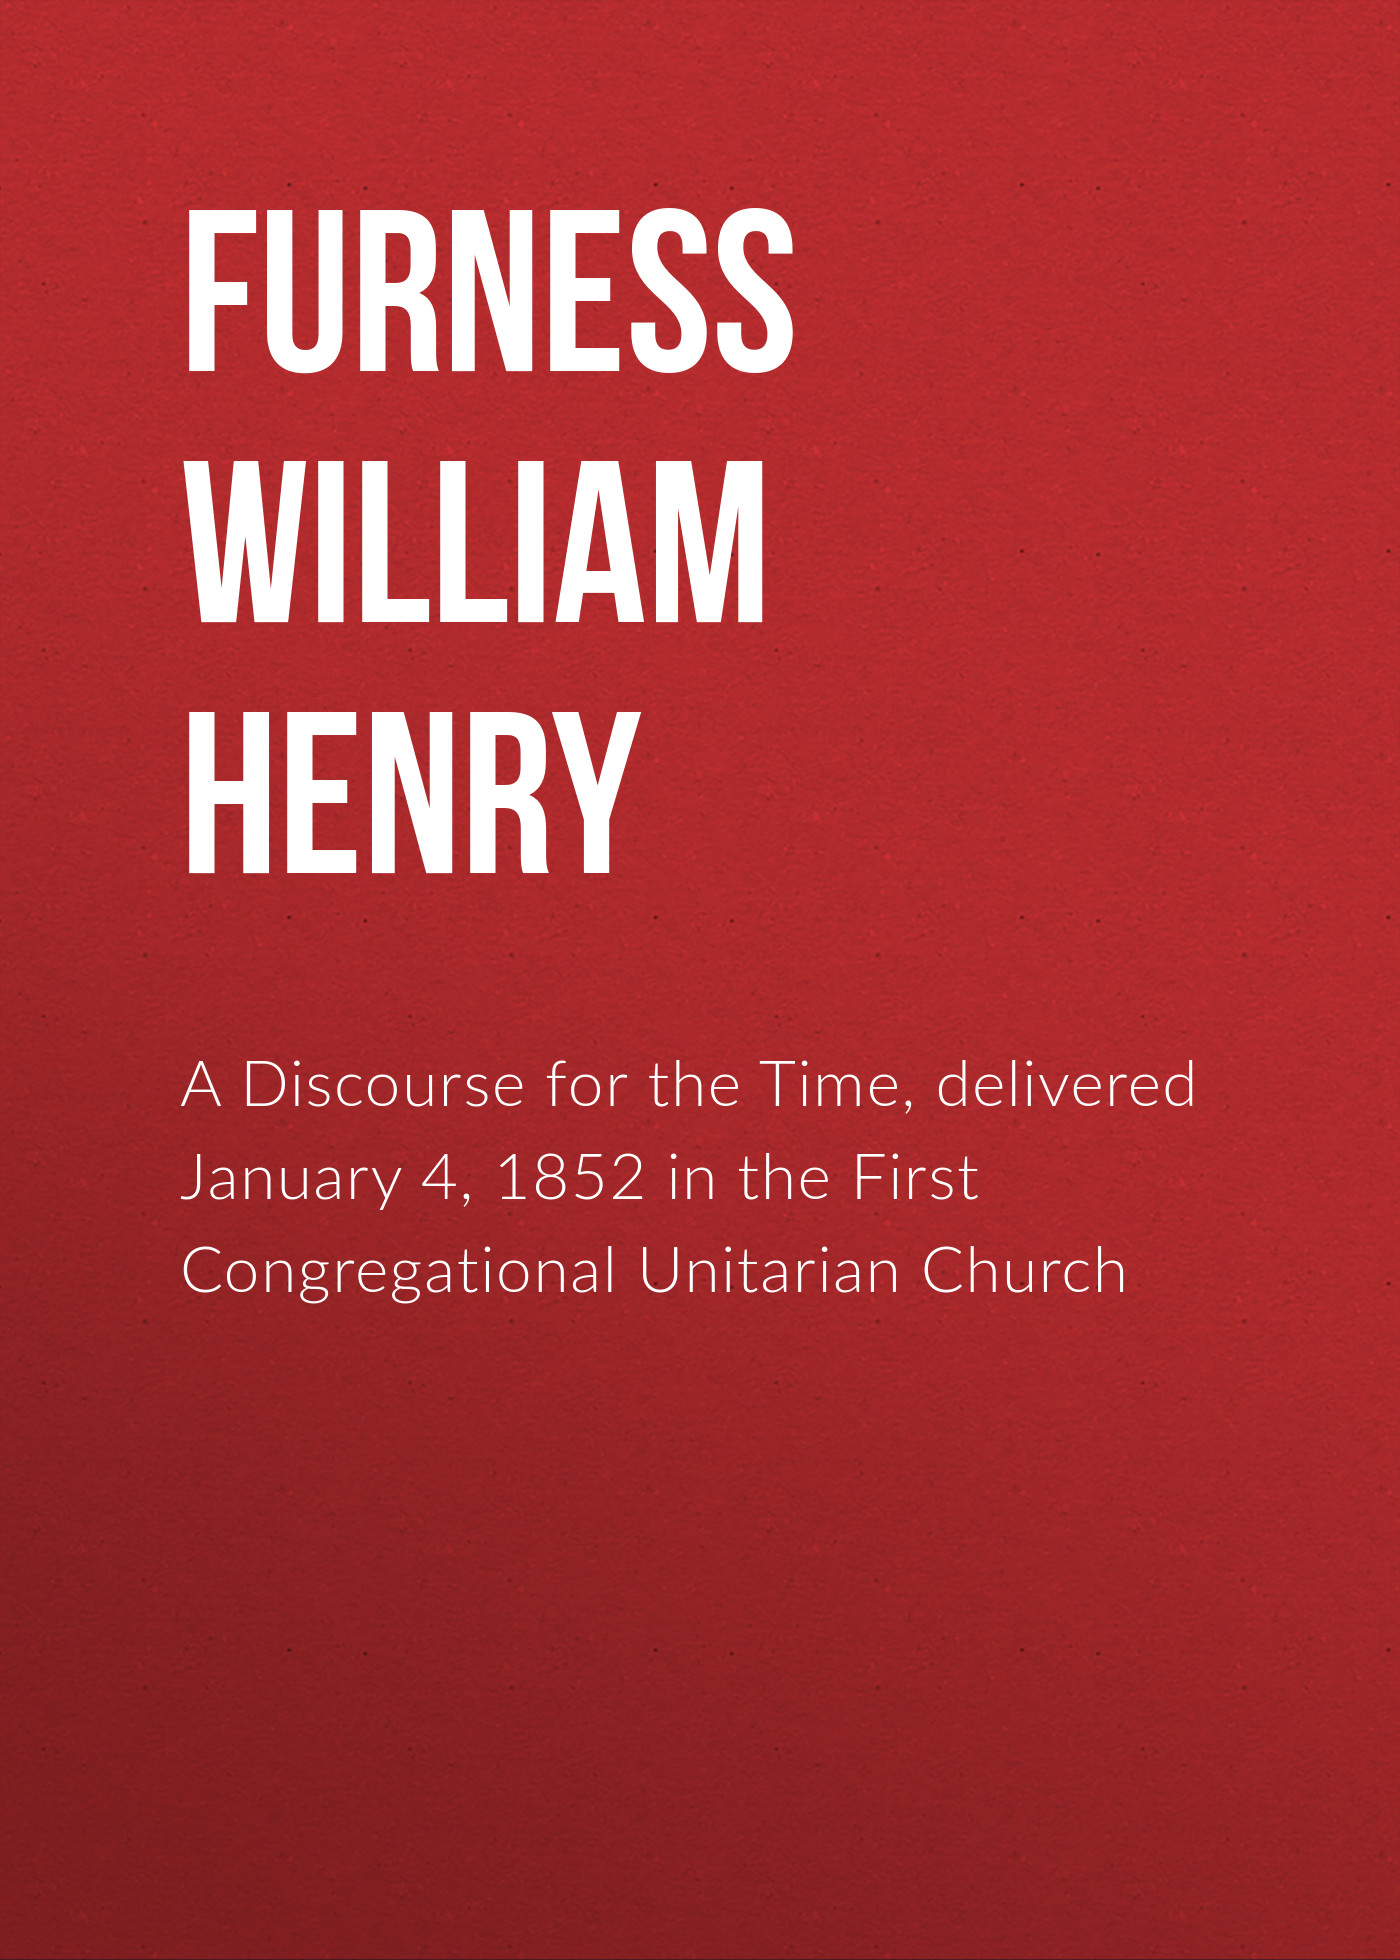 Furness William Henry A Discourse for the Time, delivered January 4, 1852 in the First Congregational Unitarian Church чертежная доска rocada 805 100х150см